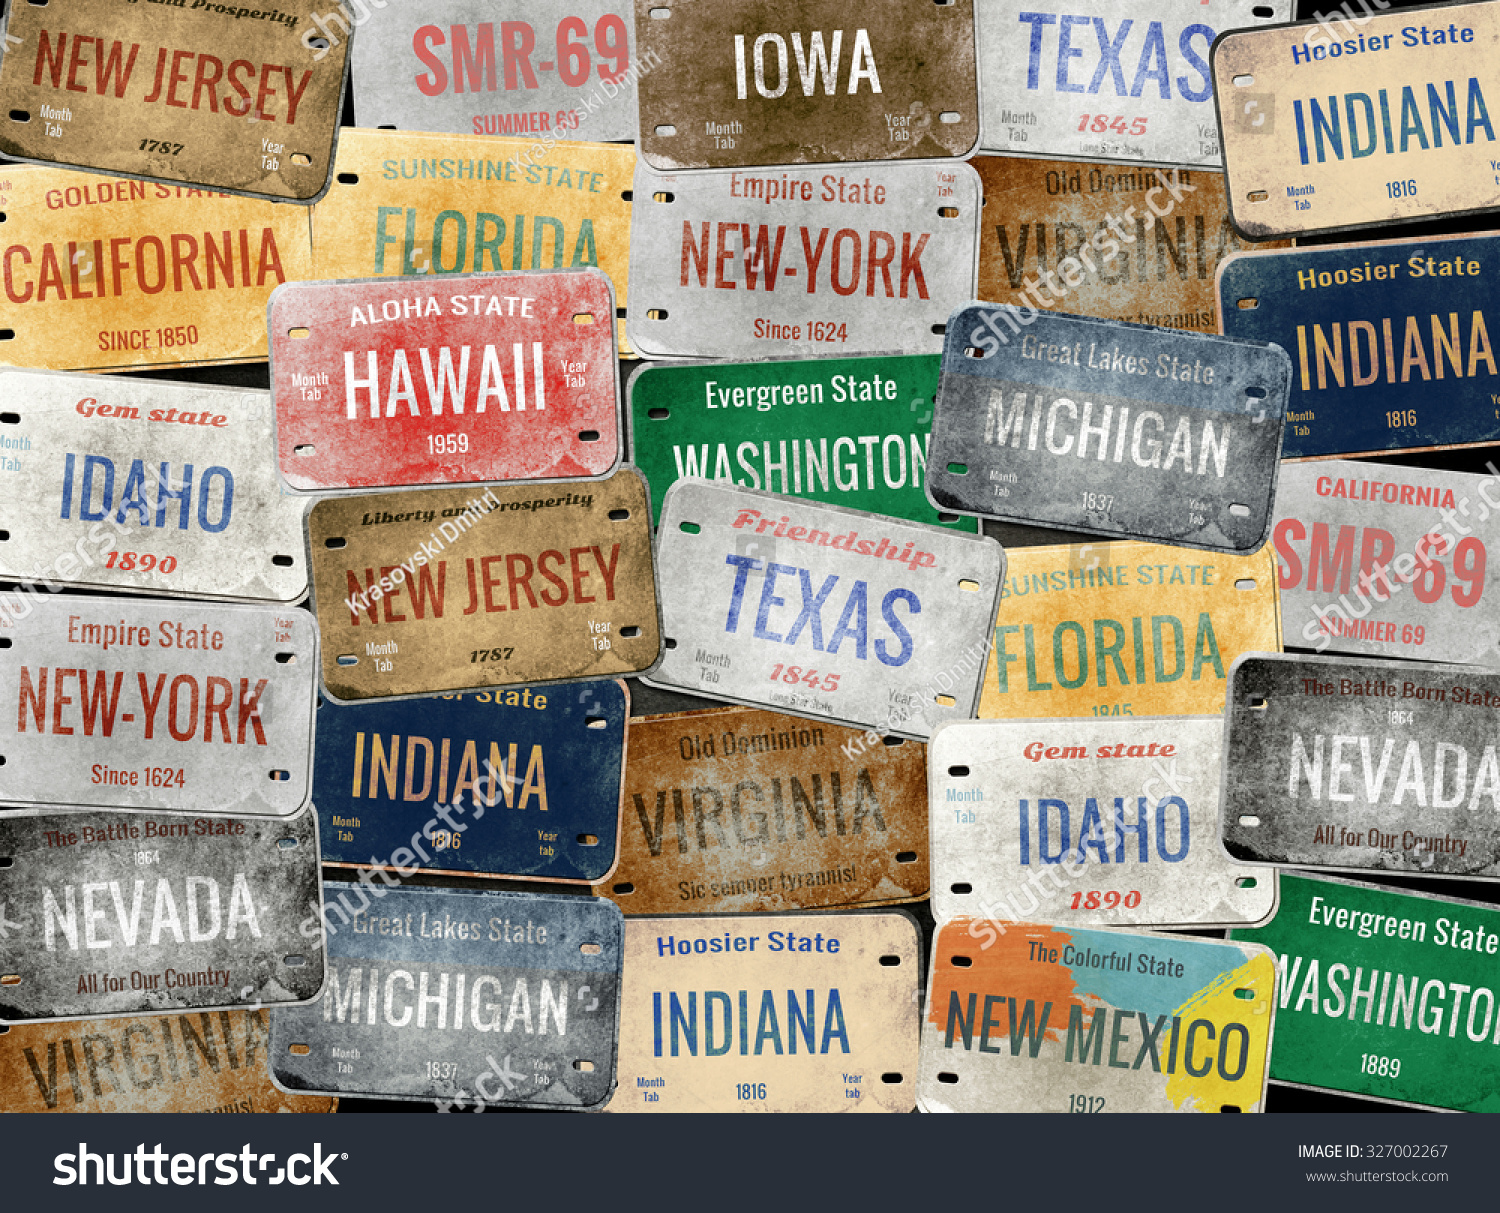 Old Car Plates Collage License Plates Stock Illustration 327002267 ...